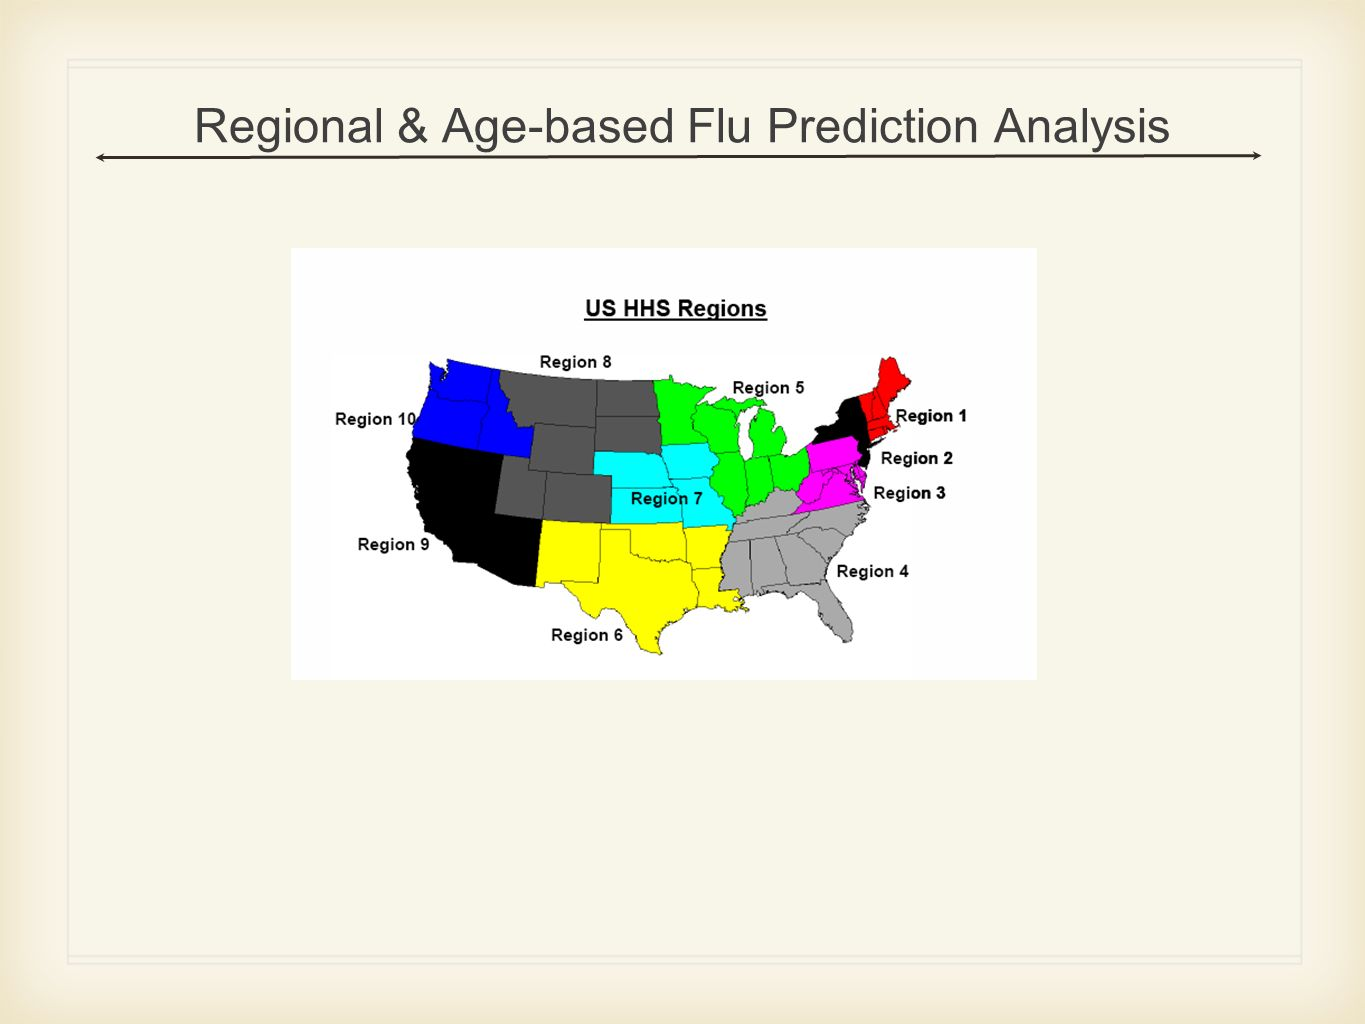 Regional & Age-based Flu Prediction Analysis